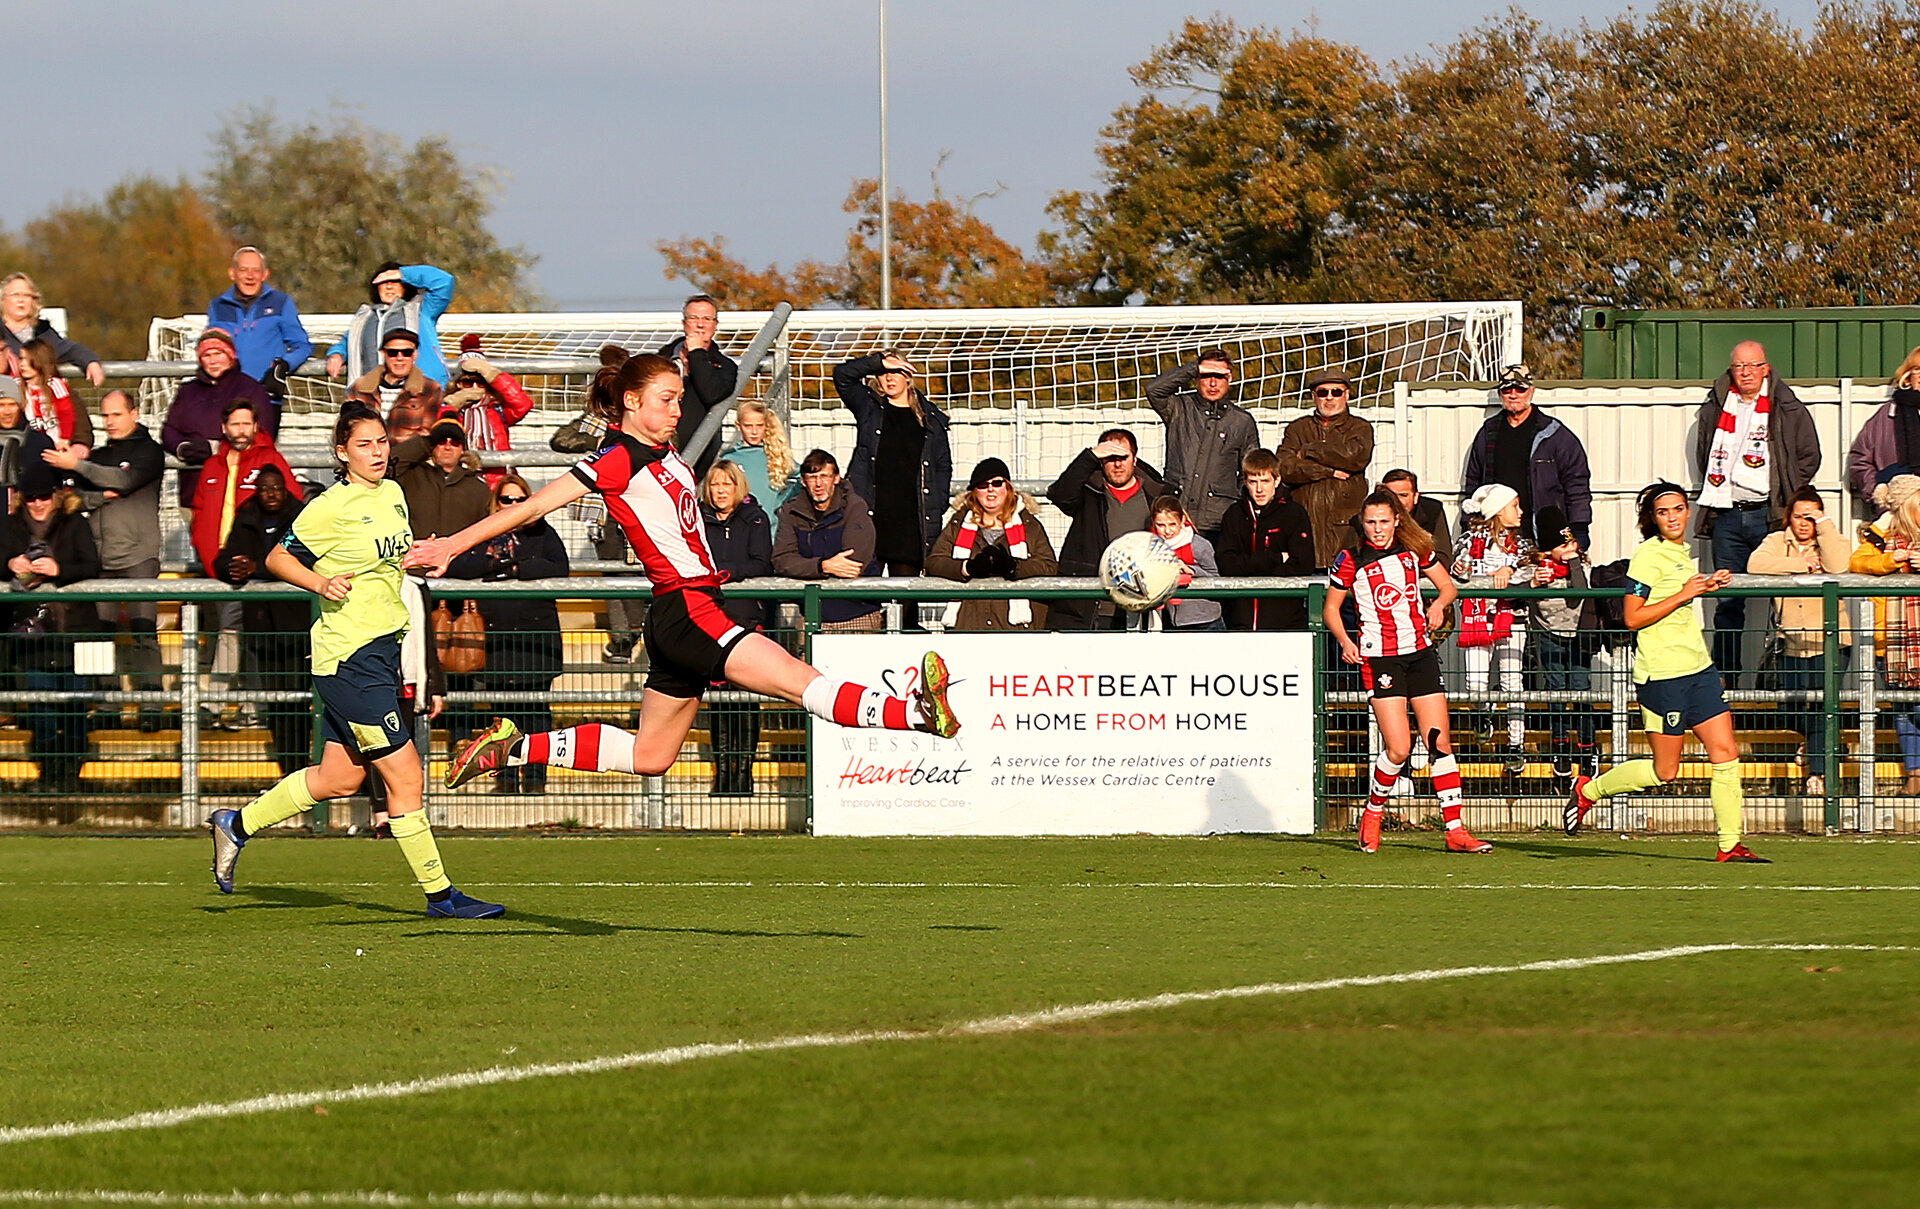 SOUTHAMPTON, ENGLAND - NOVEMBER 17: Rachel Panting of Southampton scores during the Womens Hampshire Cup round 2 match between Southampton FC Women and AFC Bournemouth Women, at the Snows stadium AFC Totton, on November 17, 2019 in Southampton, England. (Photo by Matt Watson/Southampton FC via Getty Images)